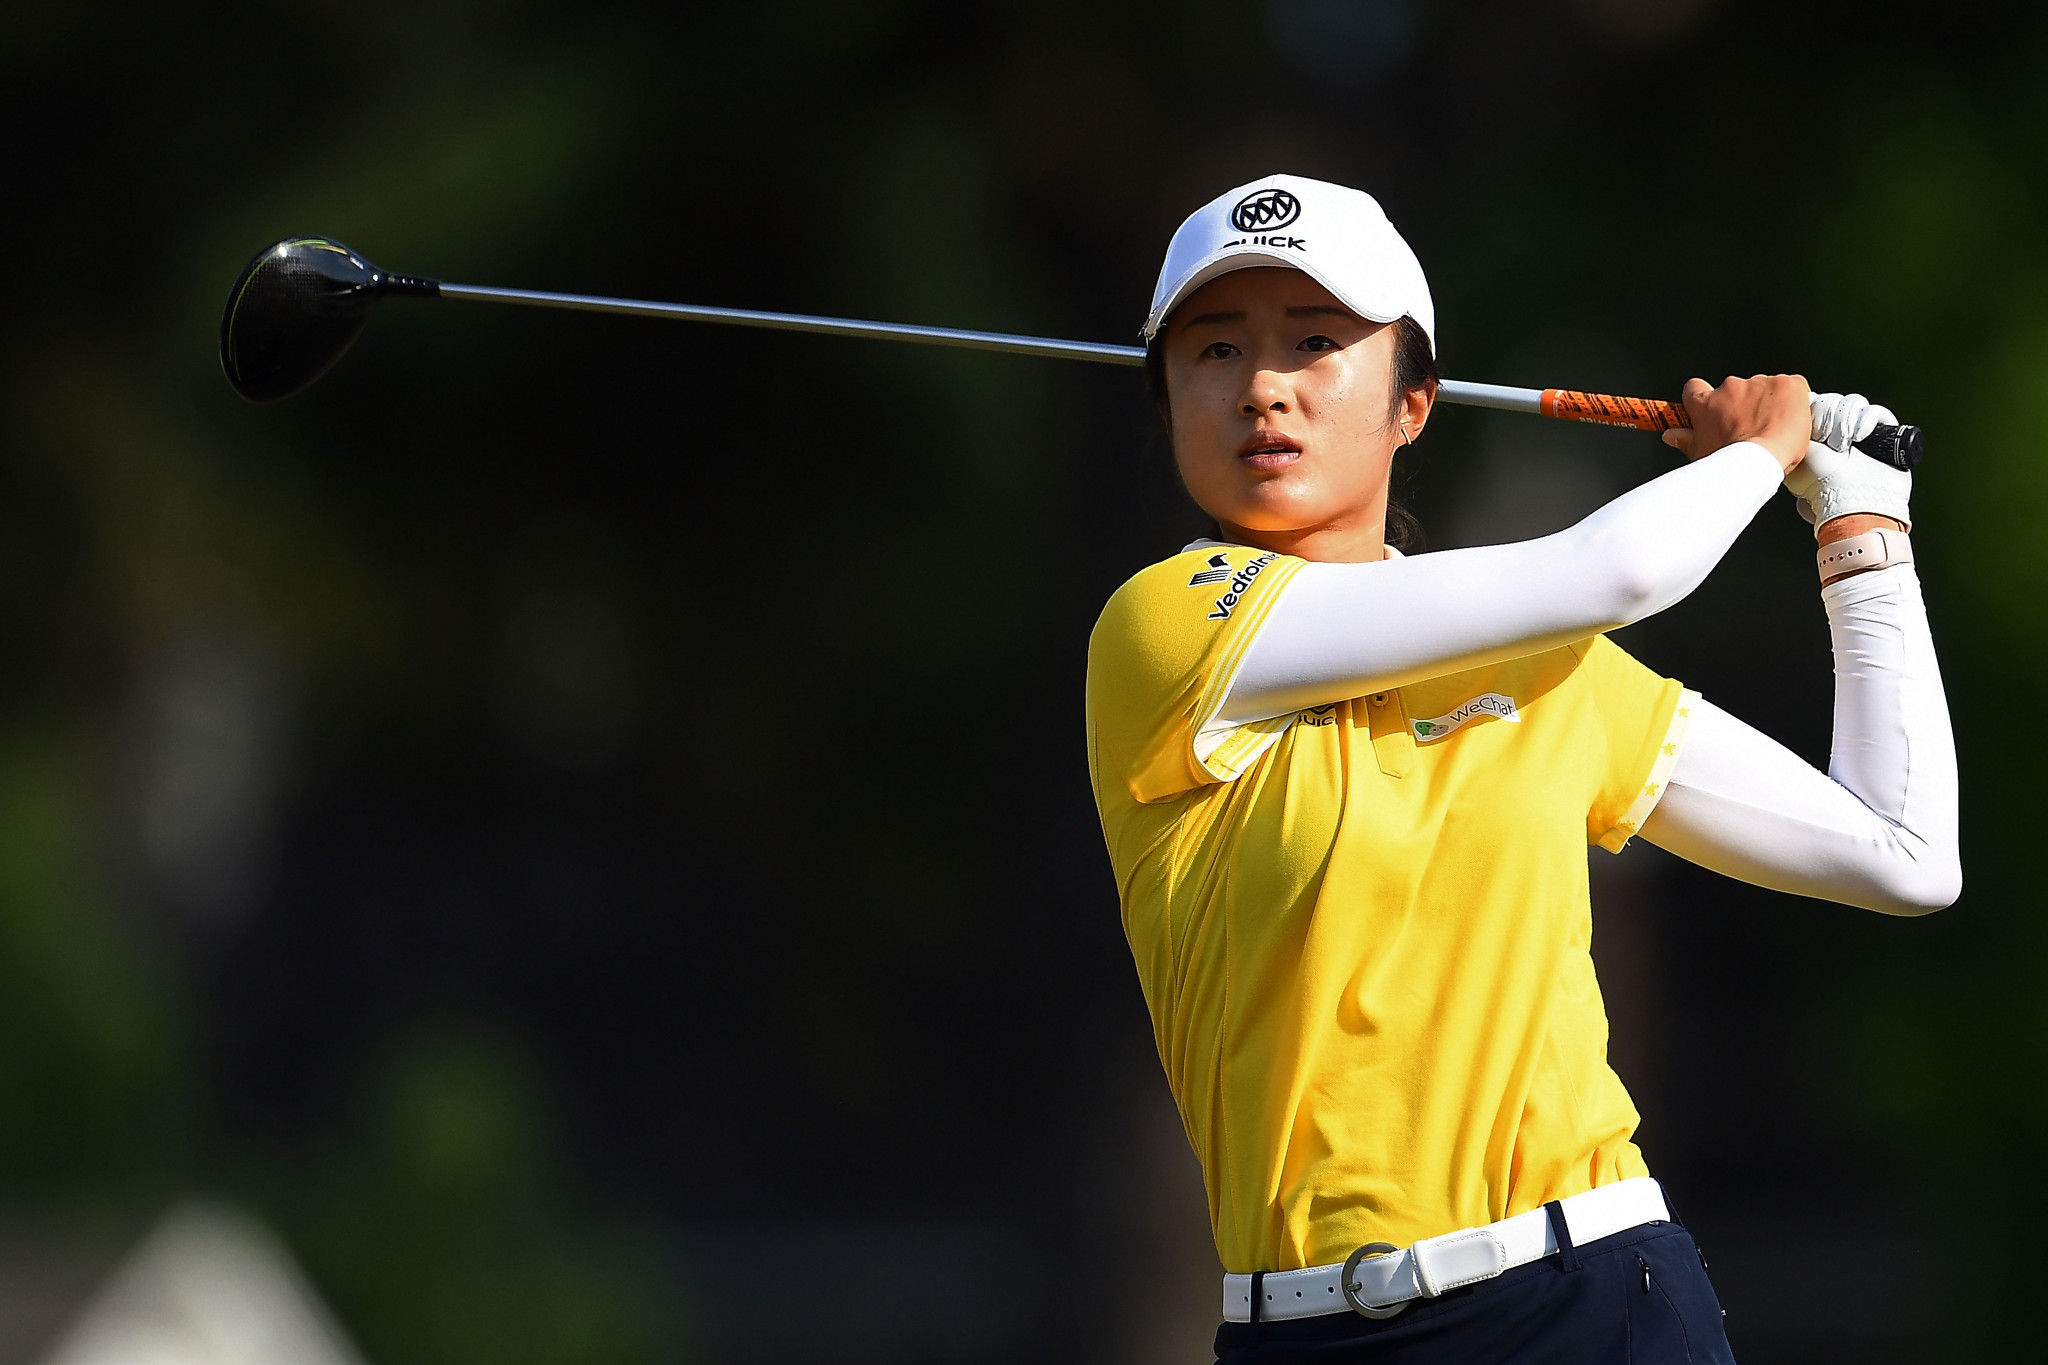 Yu Liu of China hits her tee shot on the 16th hole at  the US Women's Open Championship at the Country Club of Charleston ©Getty Images